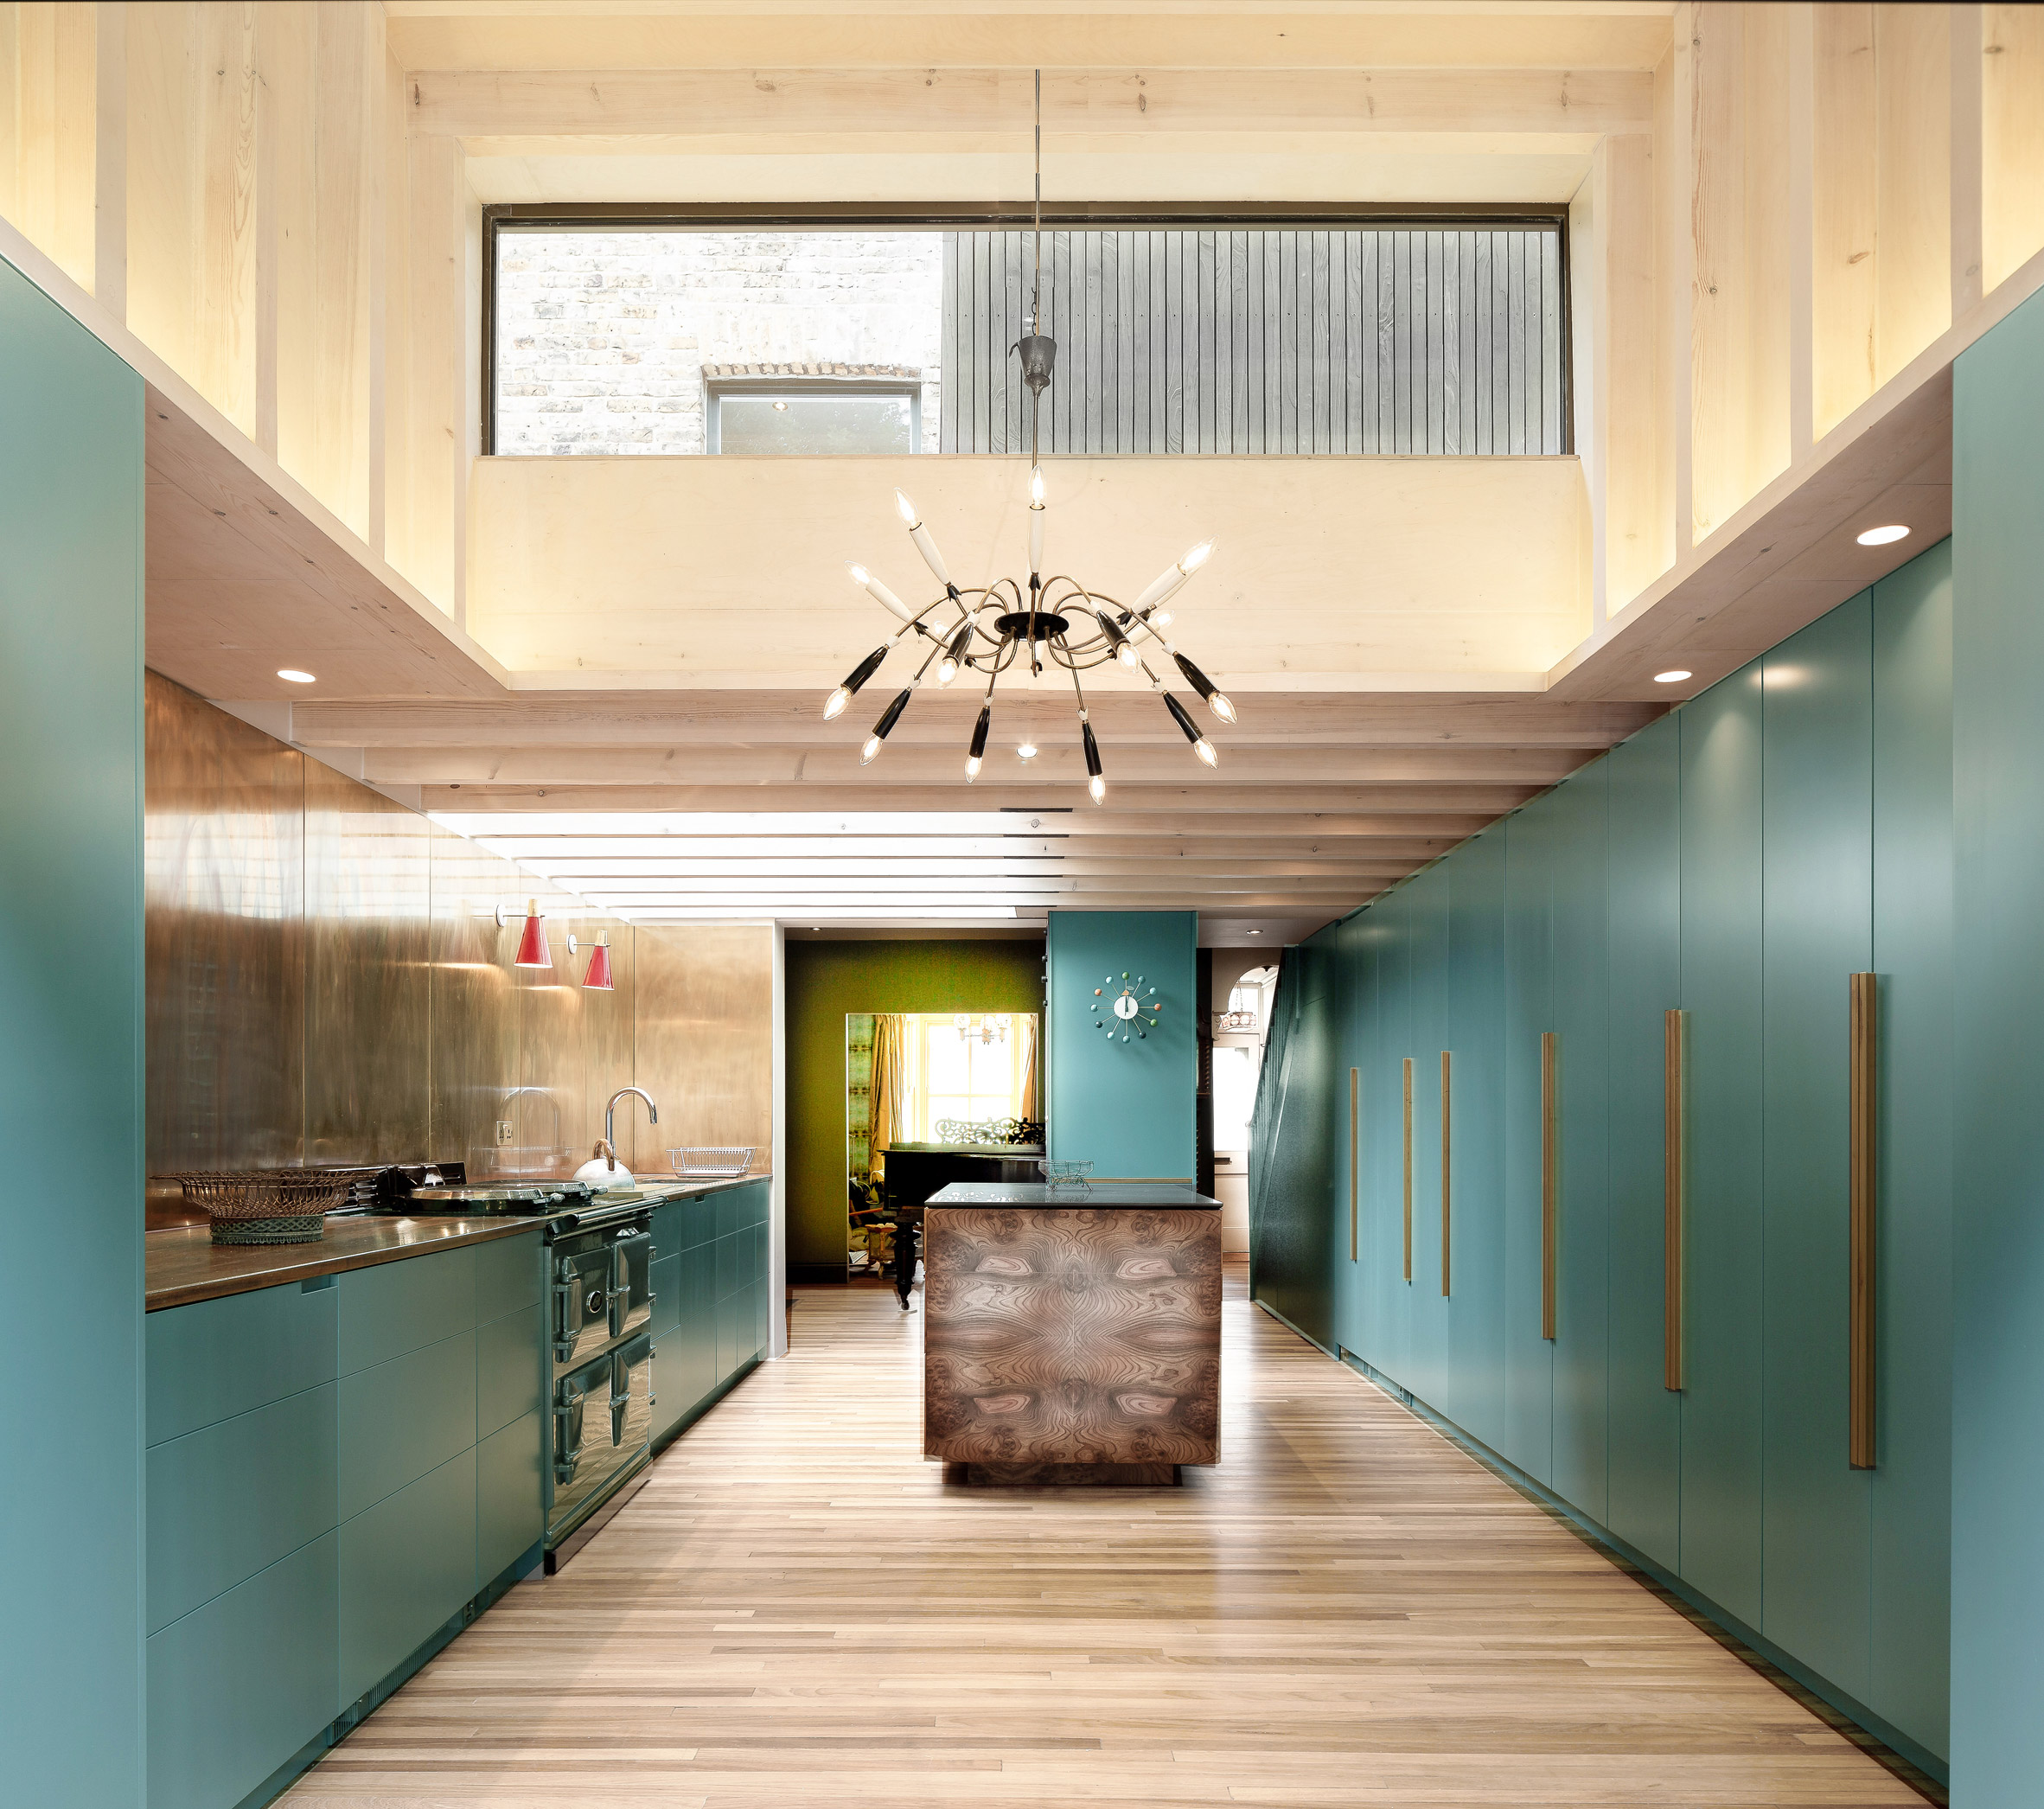 Kitchen in Jewellery Box extension to London home